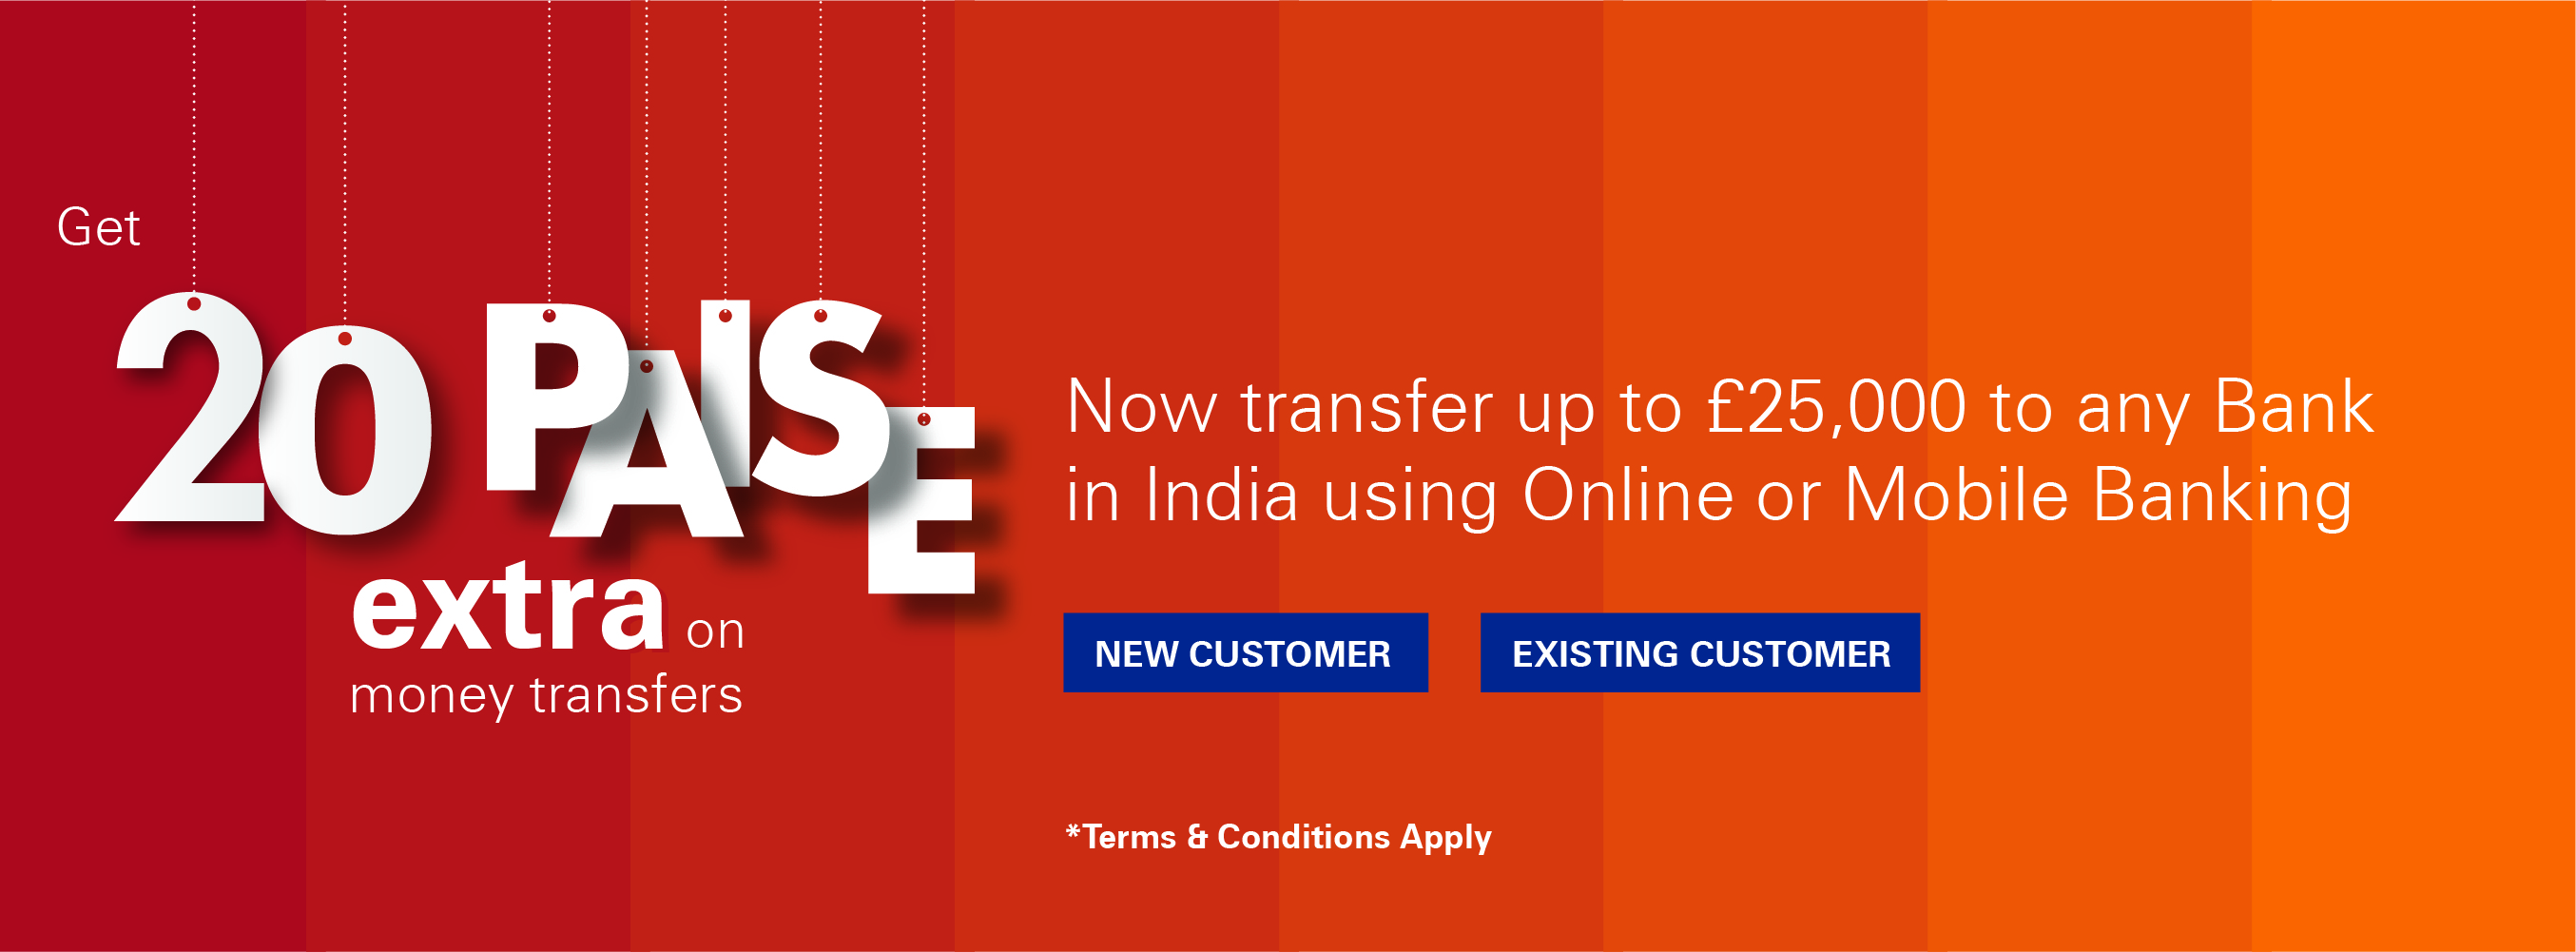 Get 20 Paise Extra on Your Money Transfer to India